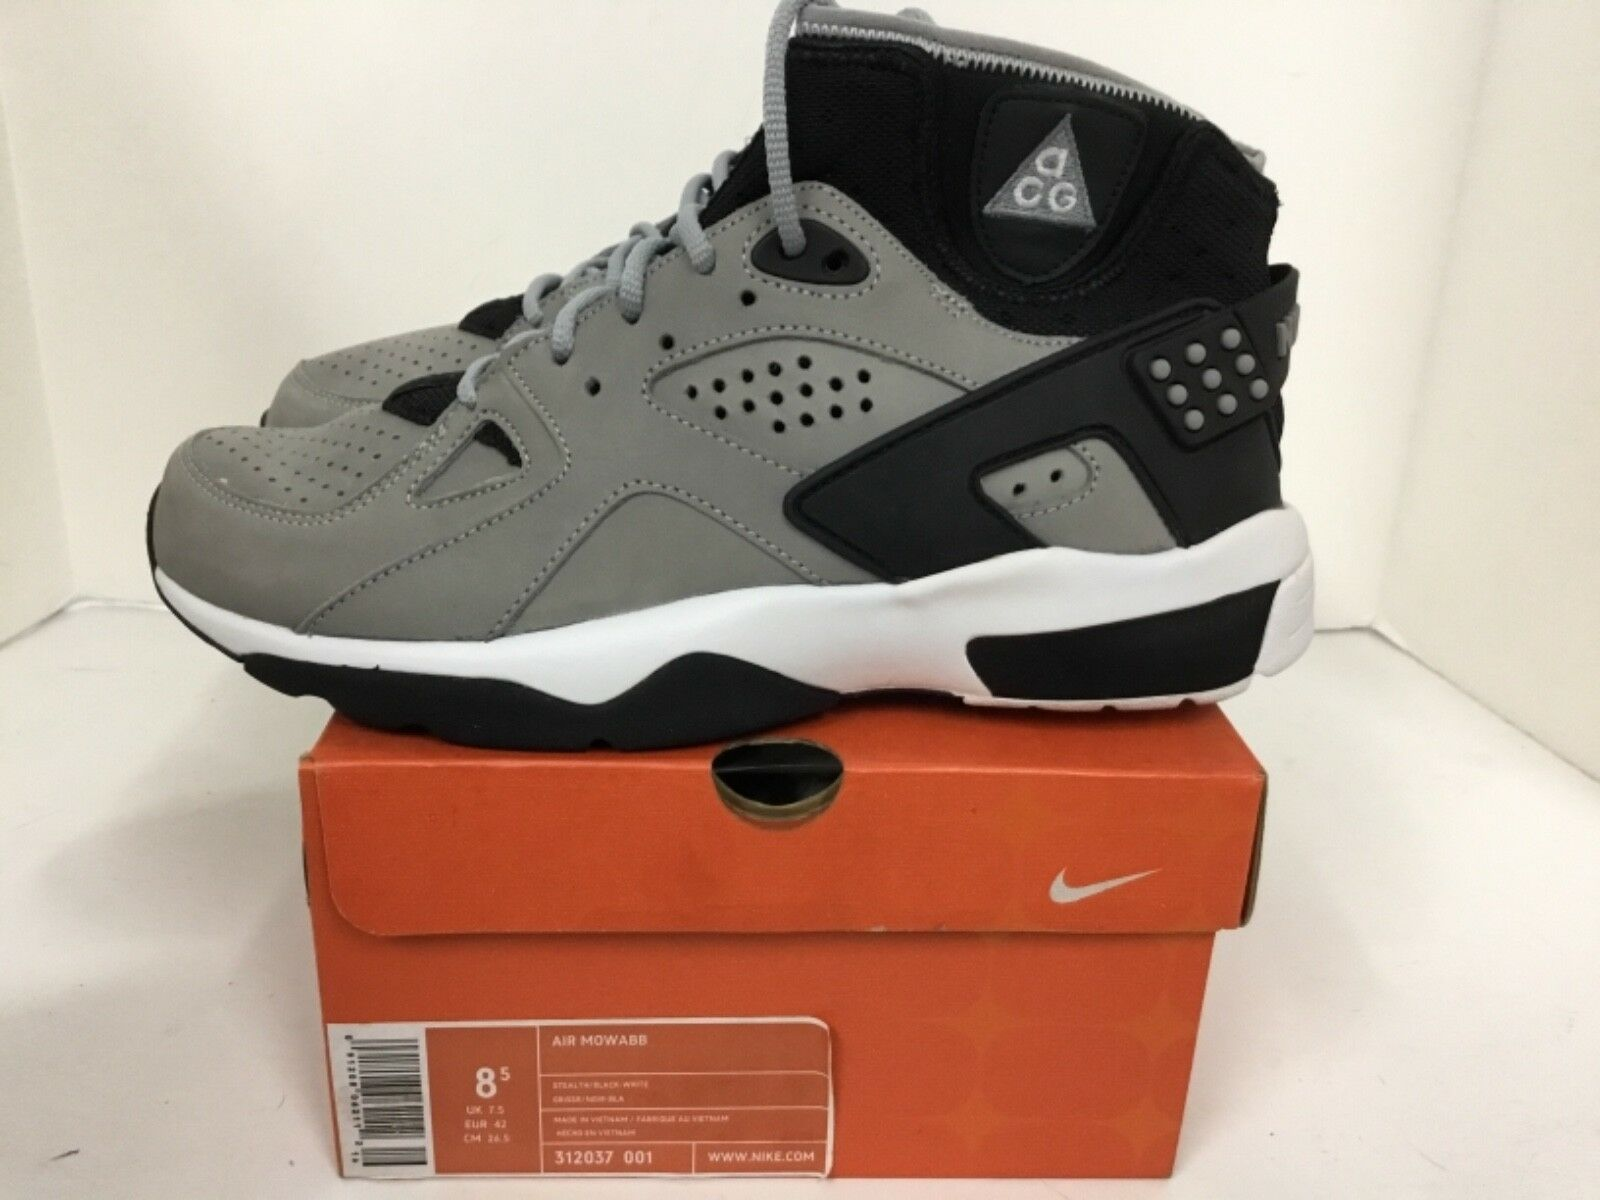 Nike Mens Air Mowabb 312037 001 Size 8.5